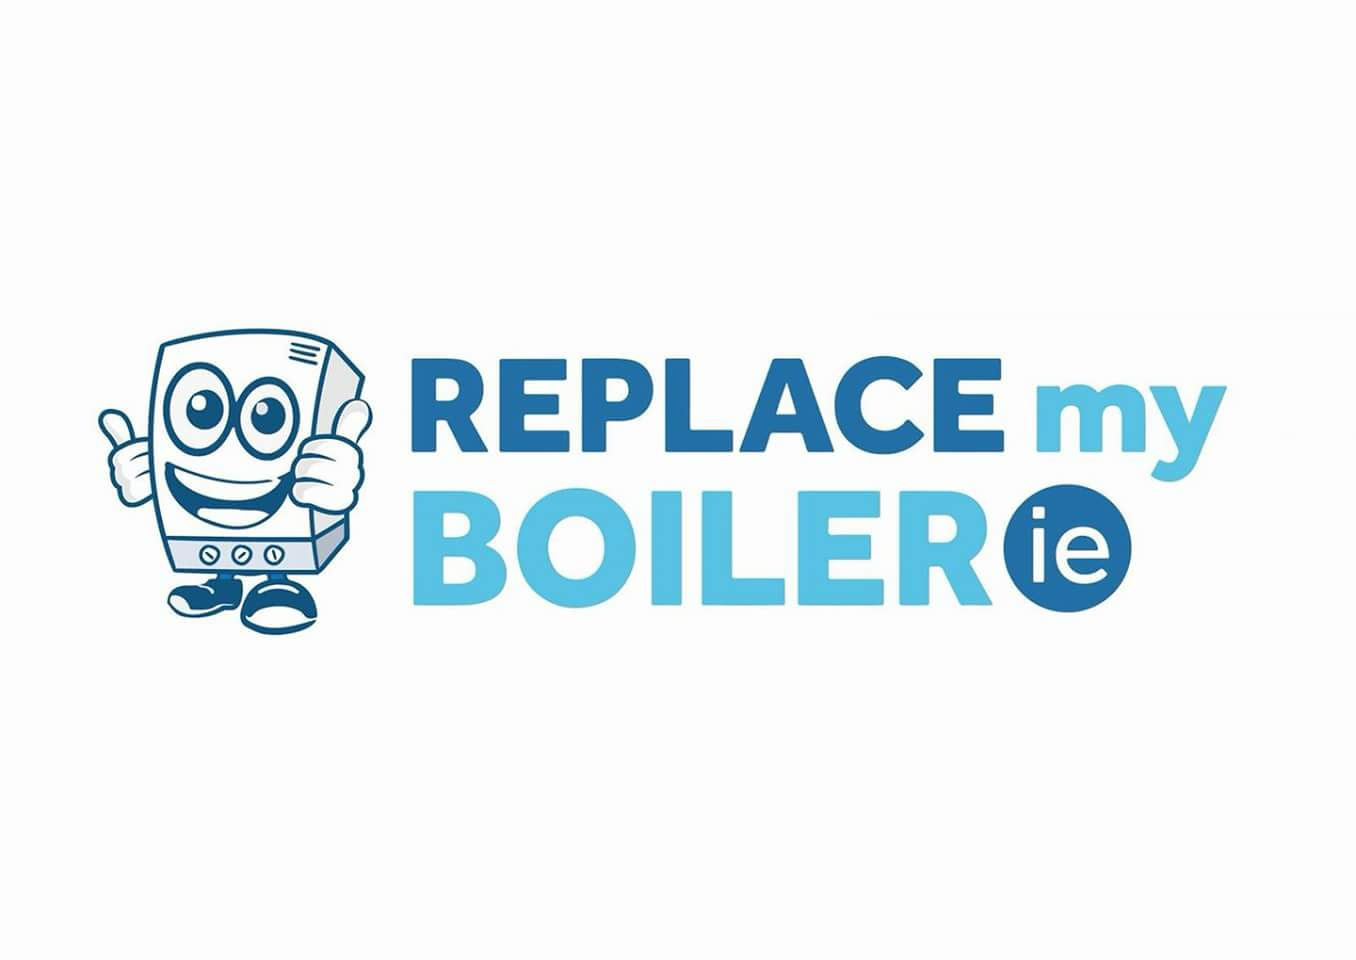 Replace My Boiler.ie